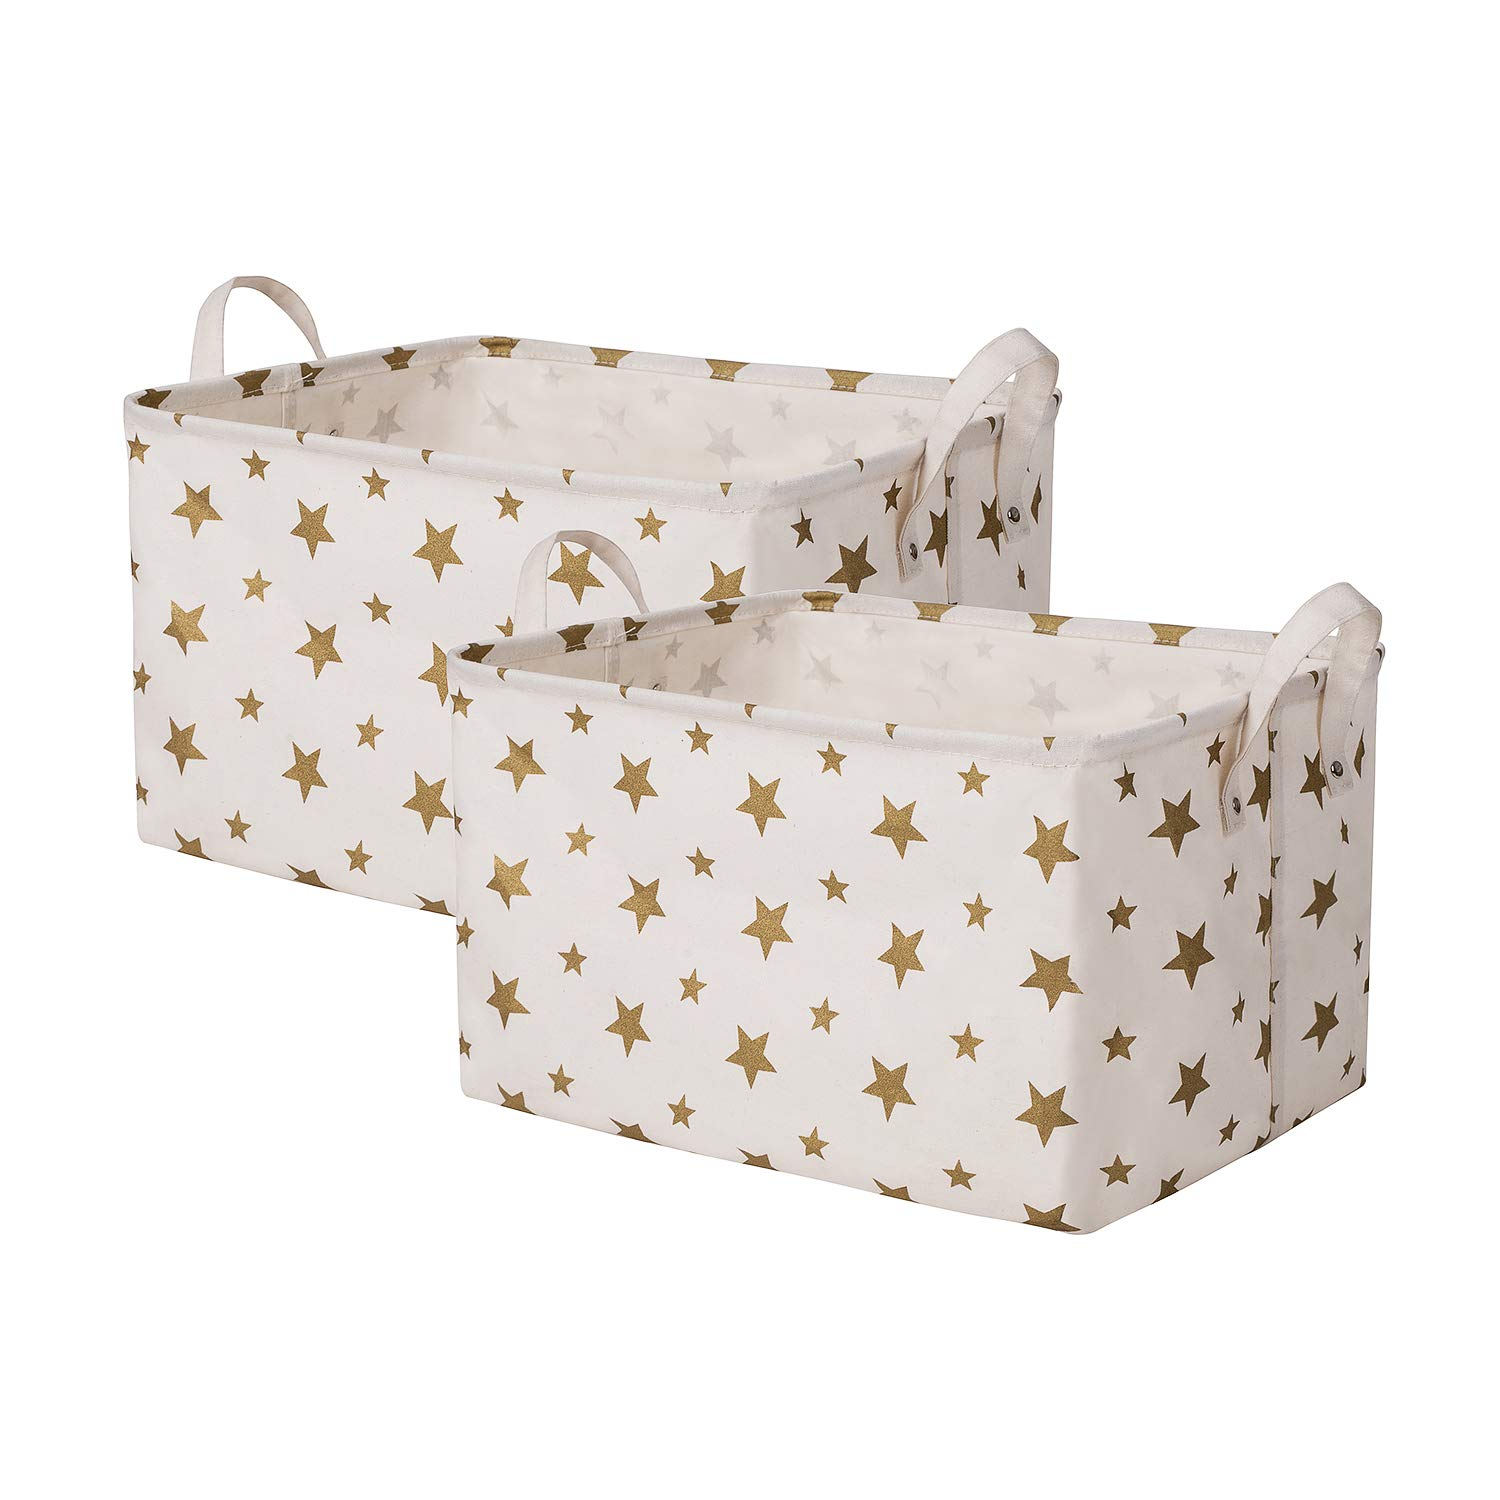 SHINYTIME Canvas Storage Baskets Bins Star Style Laundry Baskets Room Organizer for Kids Pets Toy Home Laundry Room Closet (Star-2pcs) by SHINYTIME